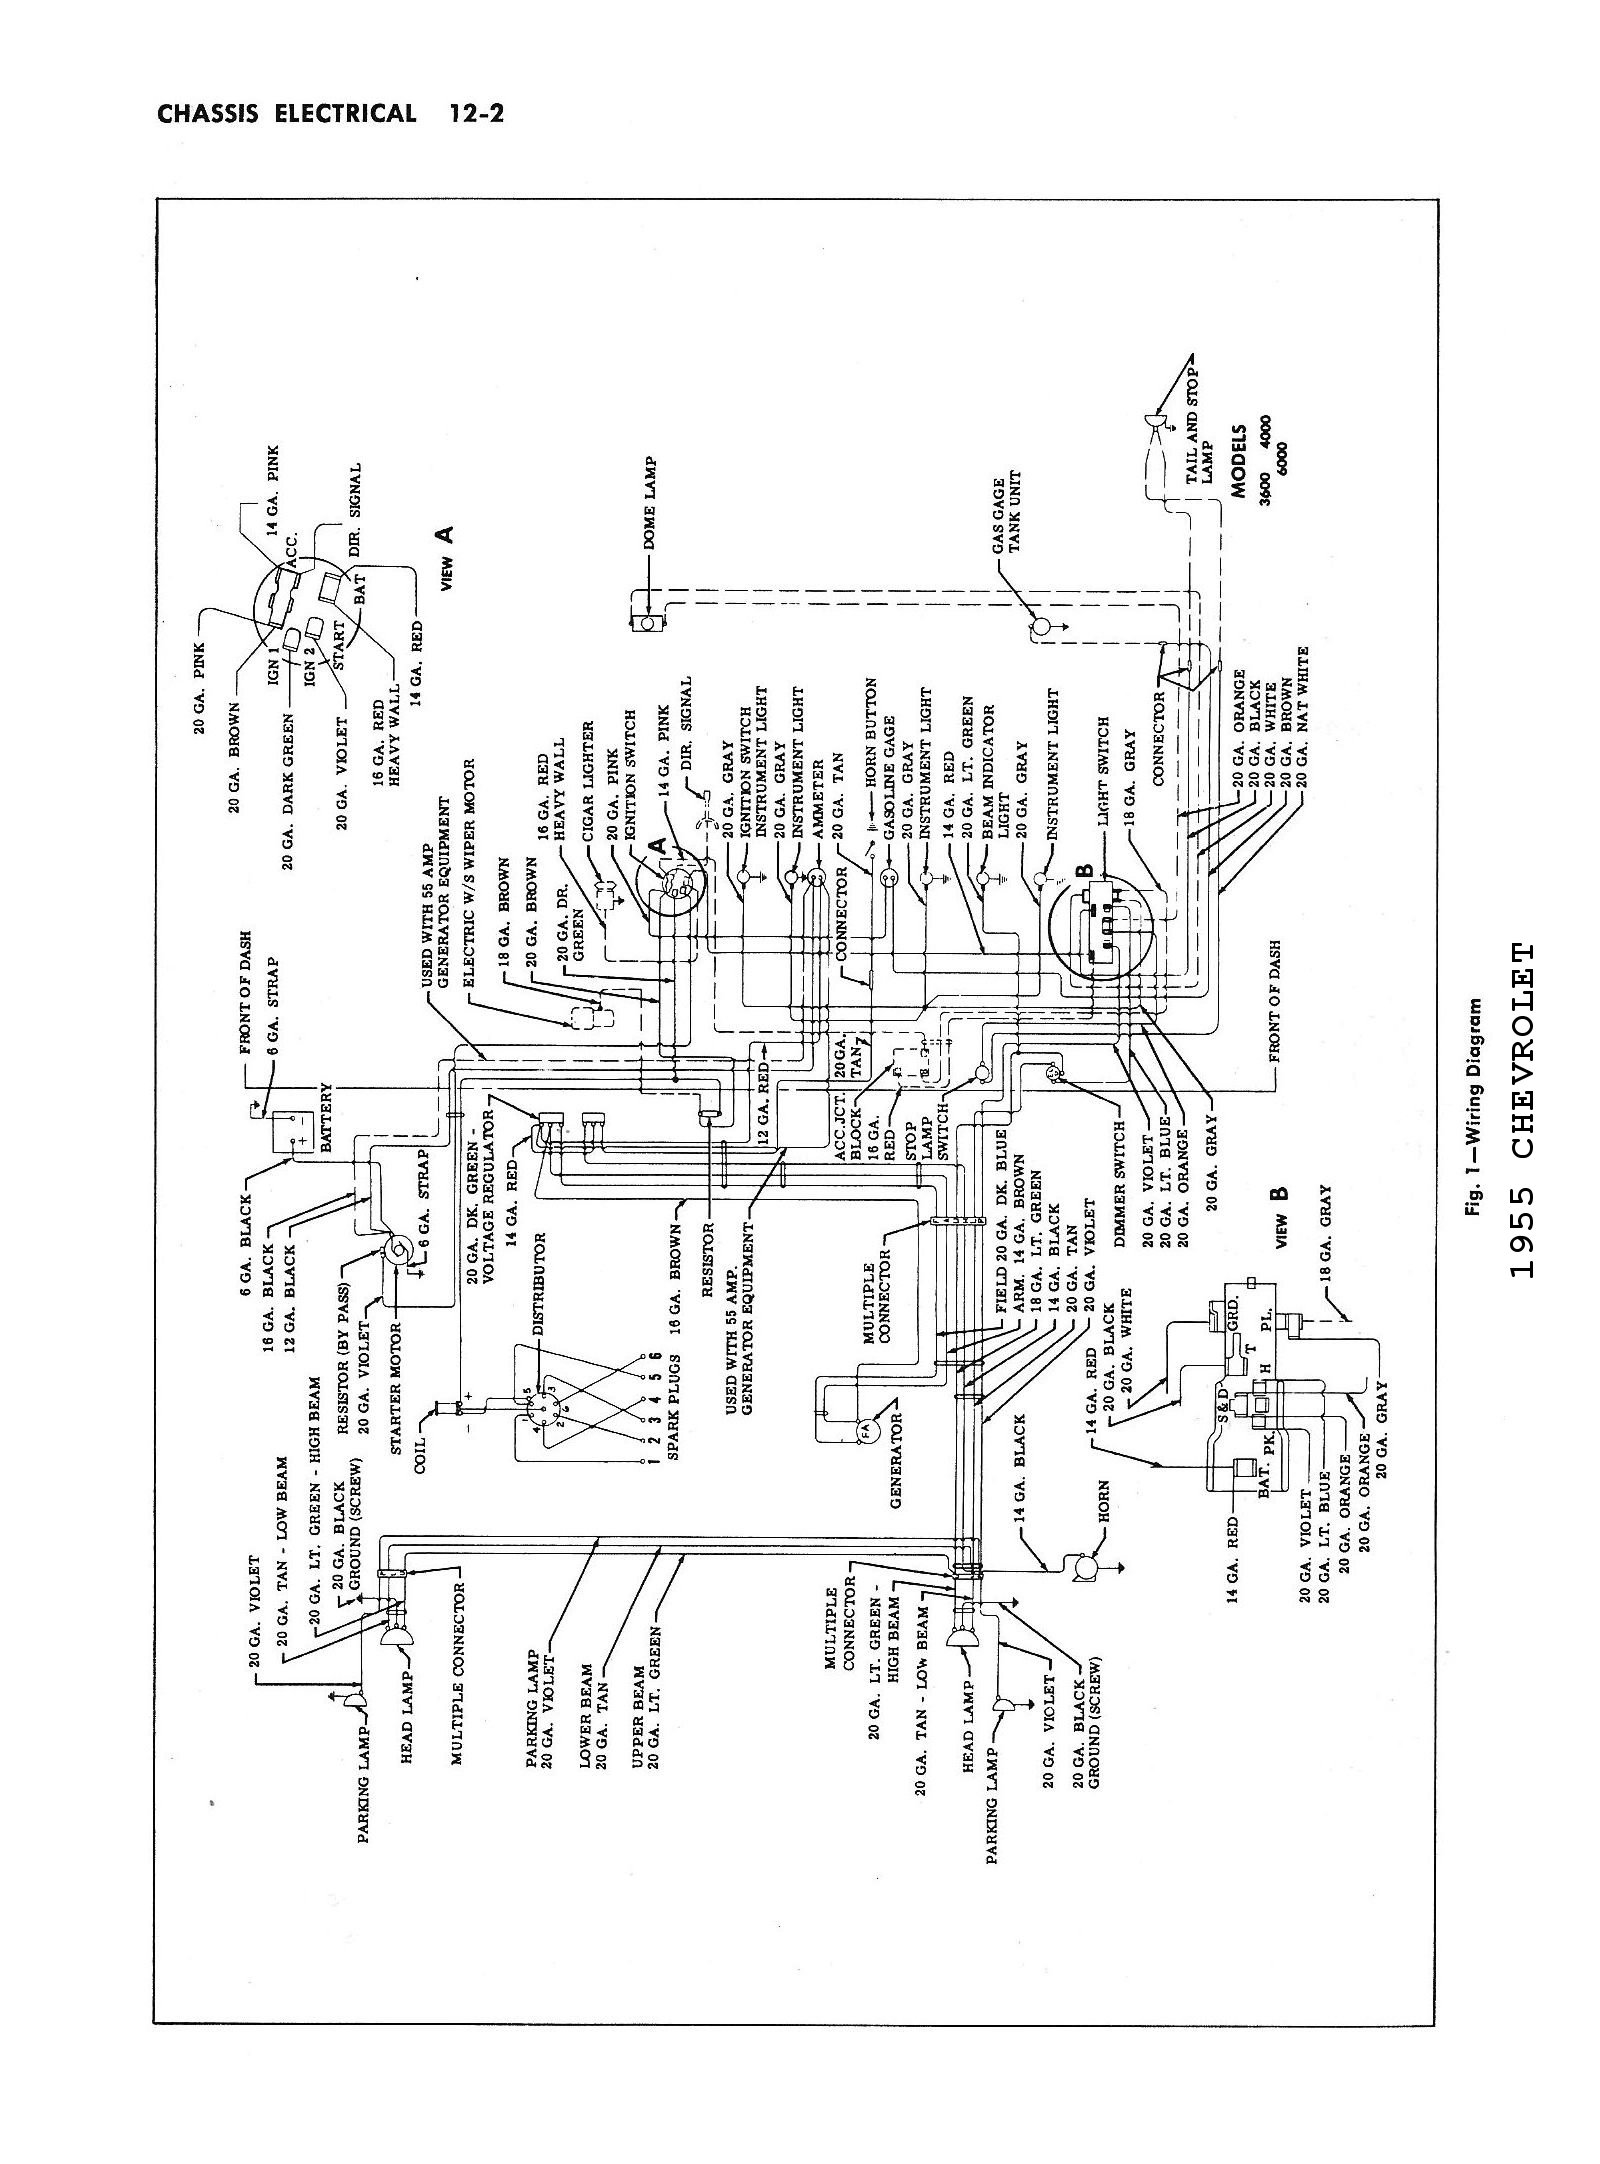 hight resolution of 1959 chevy wiring diagram wiring diagram third levelwiring diagram for 1959 chevy pickup wiring diagram todays